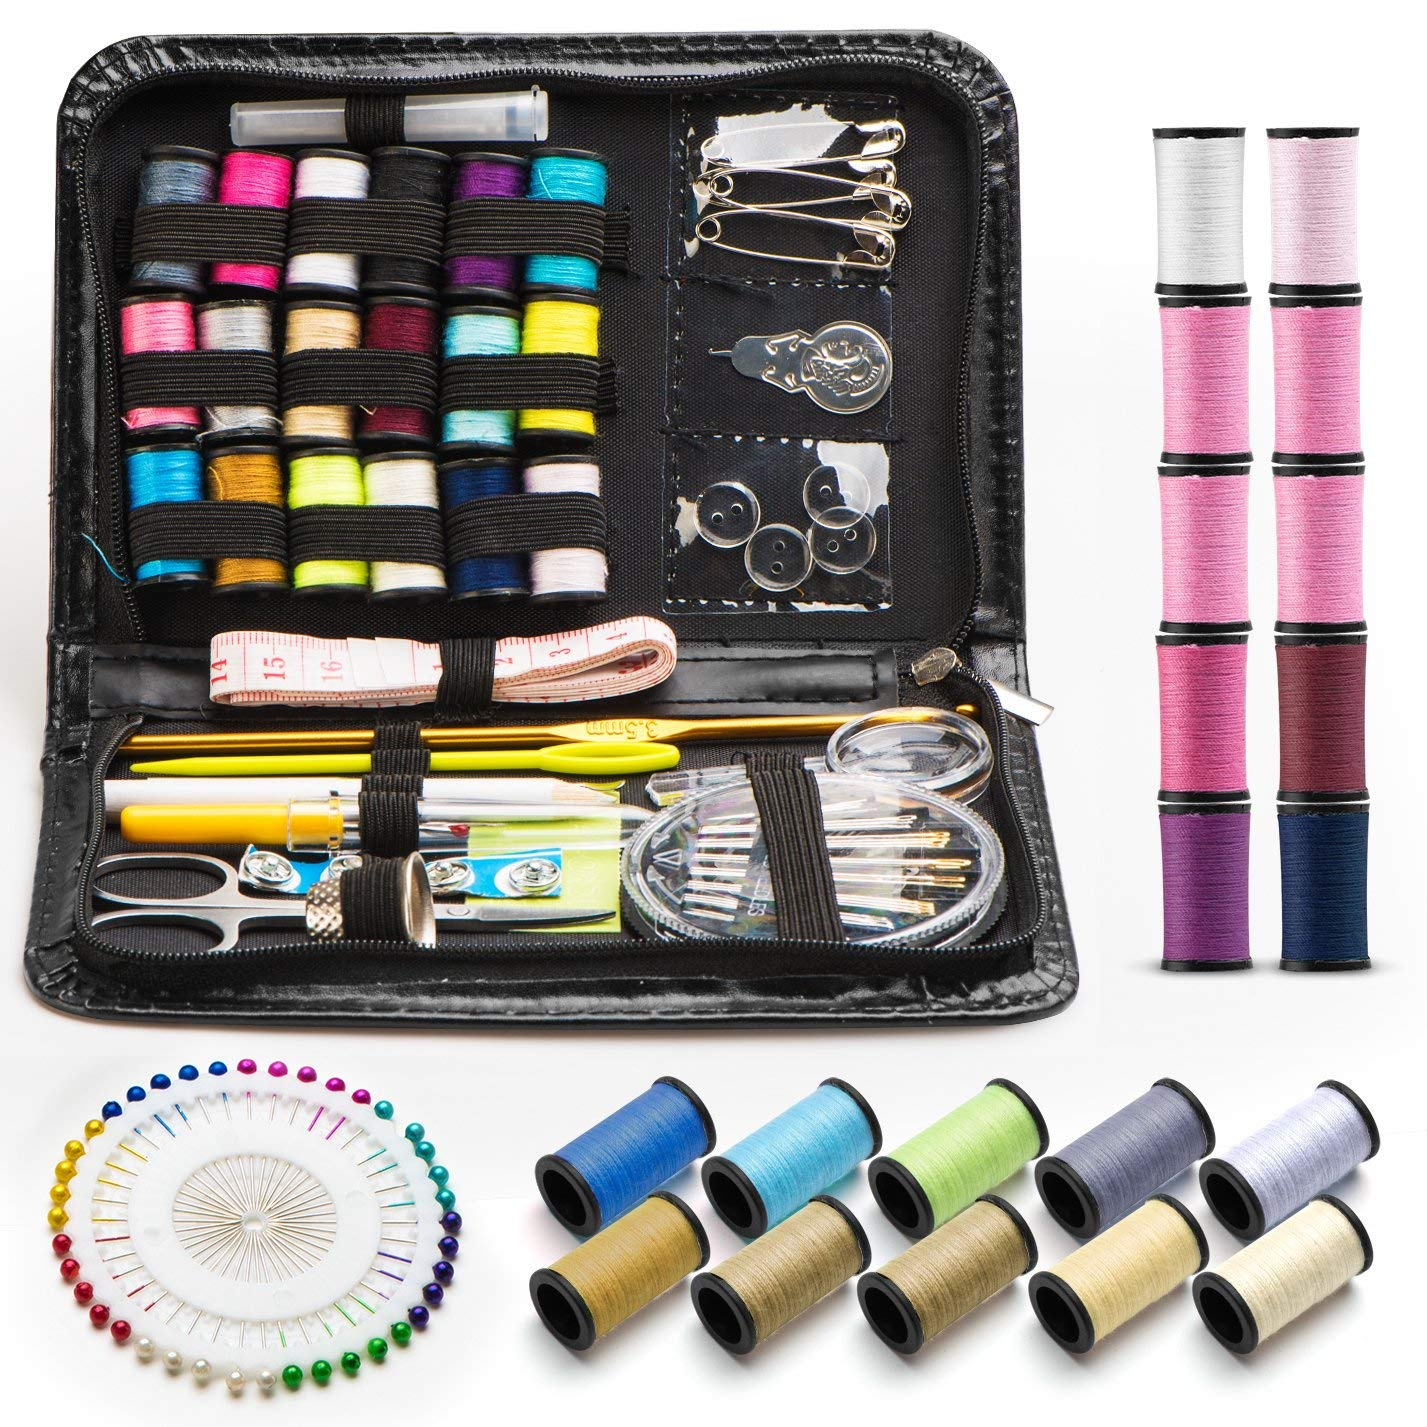 Sewing kit - 134 Pcs Portable DIY to Mending and Repair Sewing Supplies - Mini Sew Kits for Traveler, Adults, Beginner Thread & Needles Supplies & Accessories